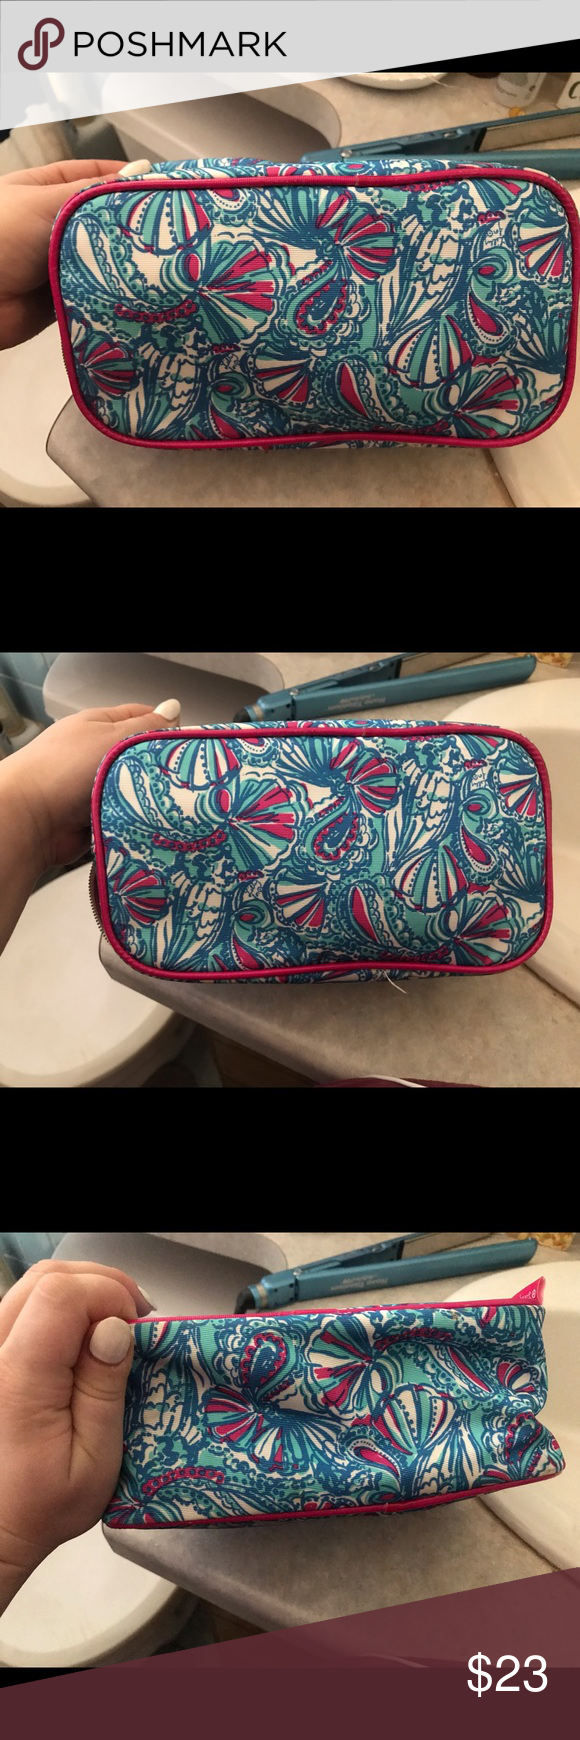 Lilly for Target Large Cosmetic Bag Some make up on the